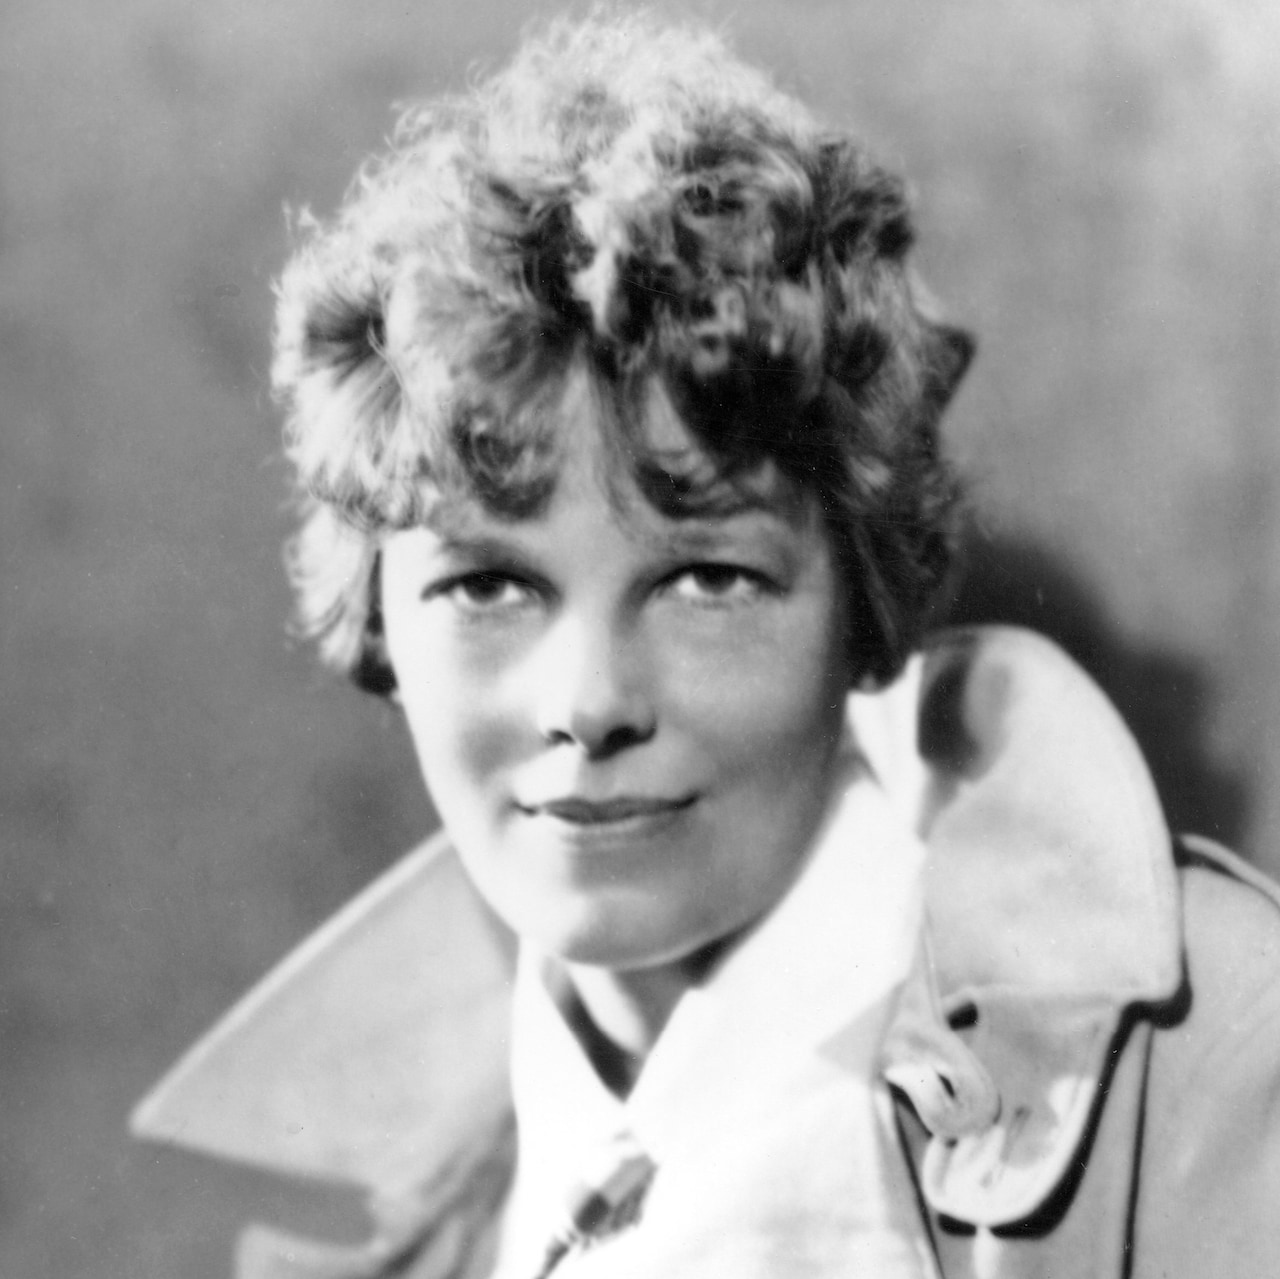 STUDY CONCLUDES BONES FOUND ON PACIFIC ISLAND MOST LIKELY THOSE OF AMELIA EARHART